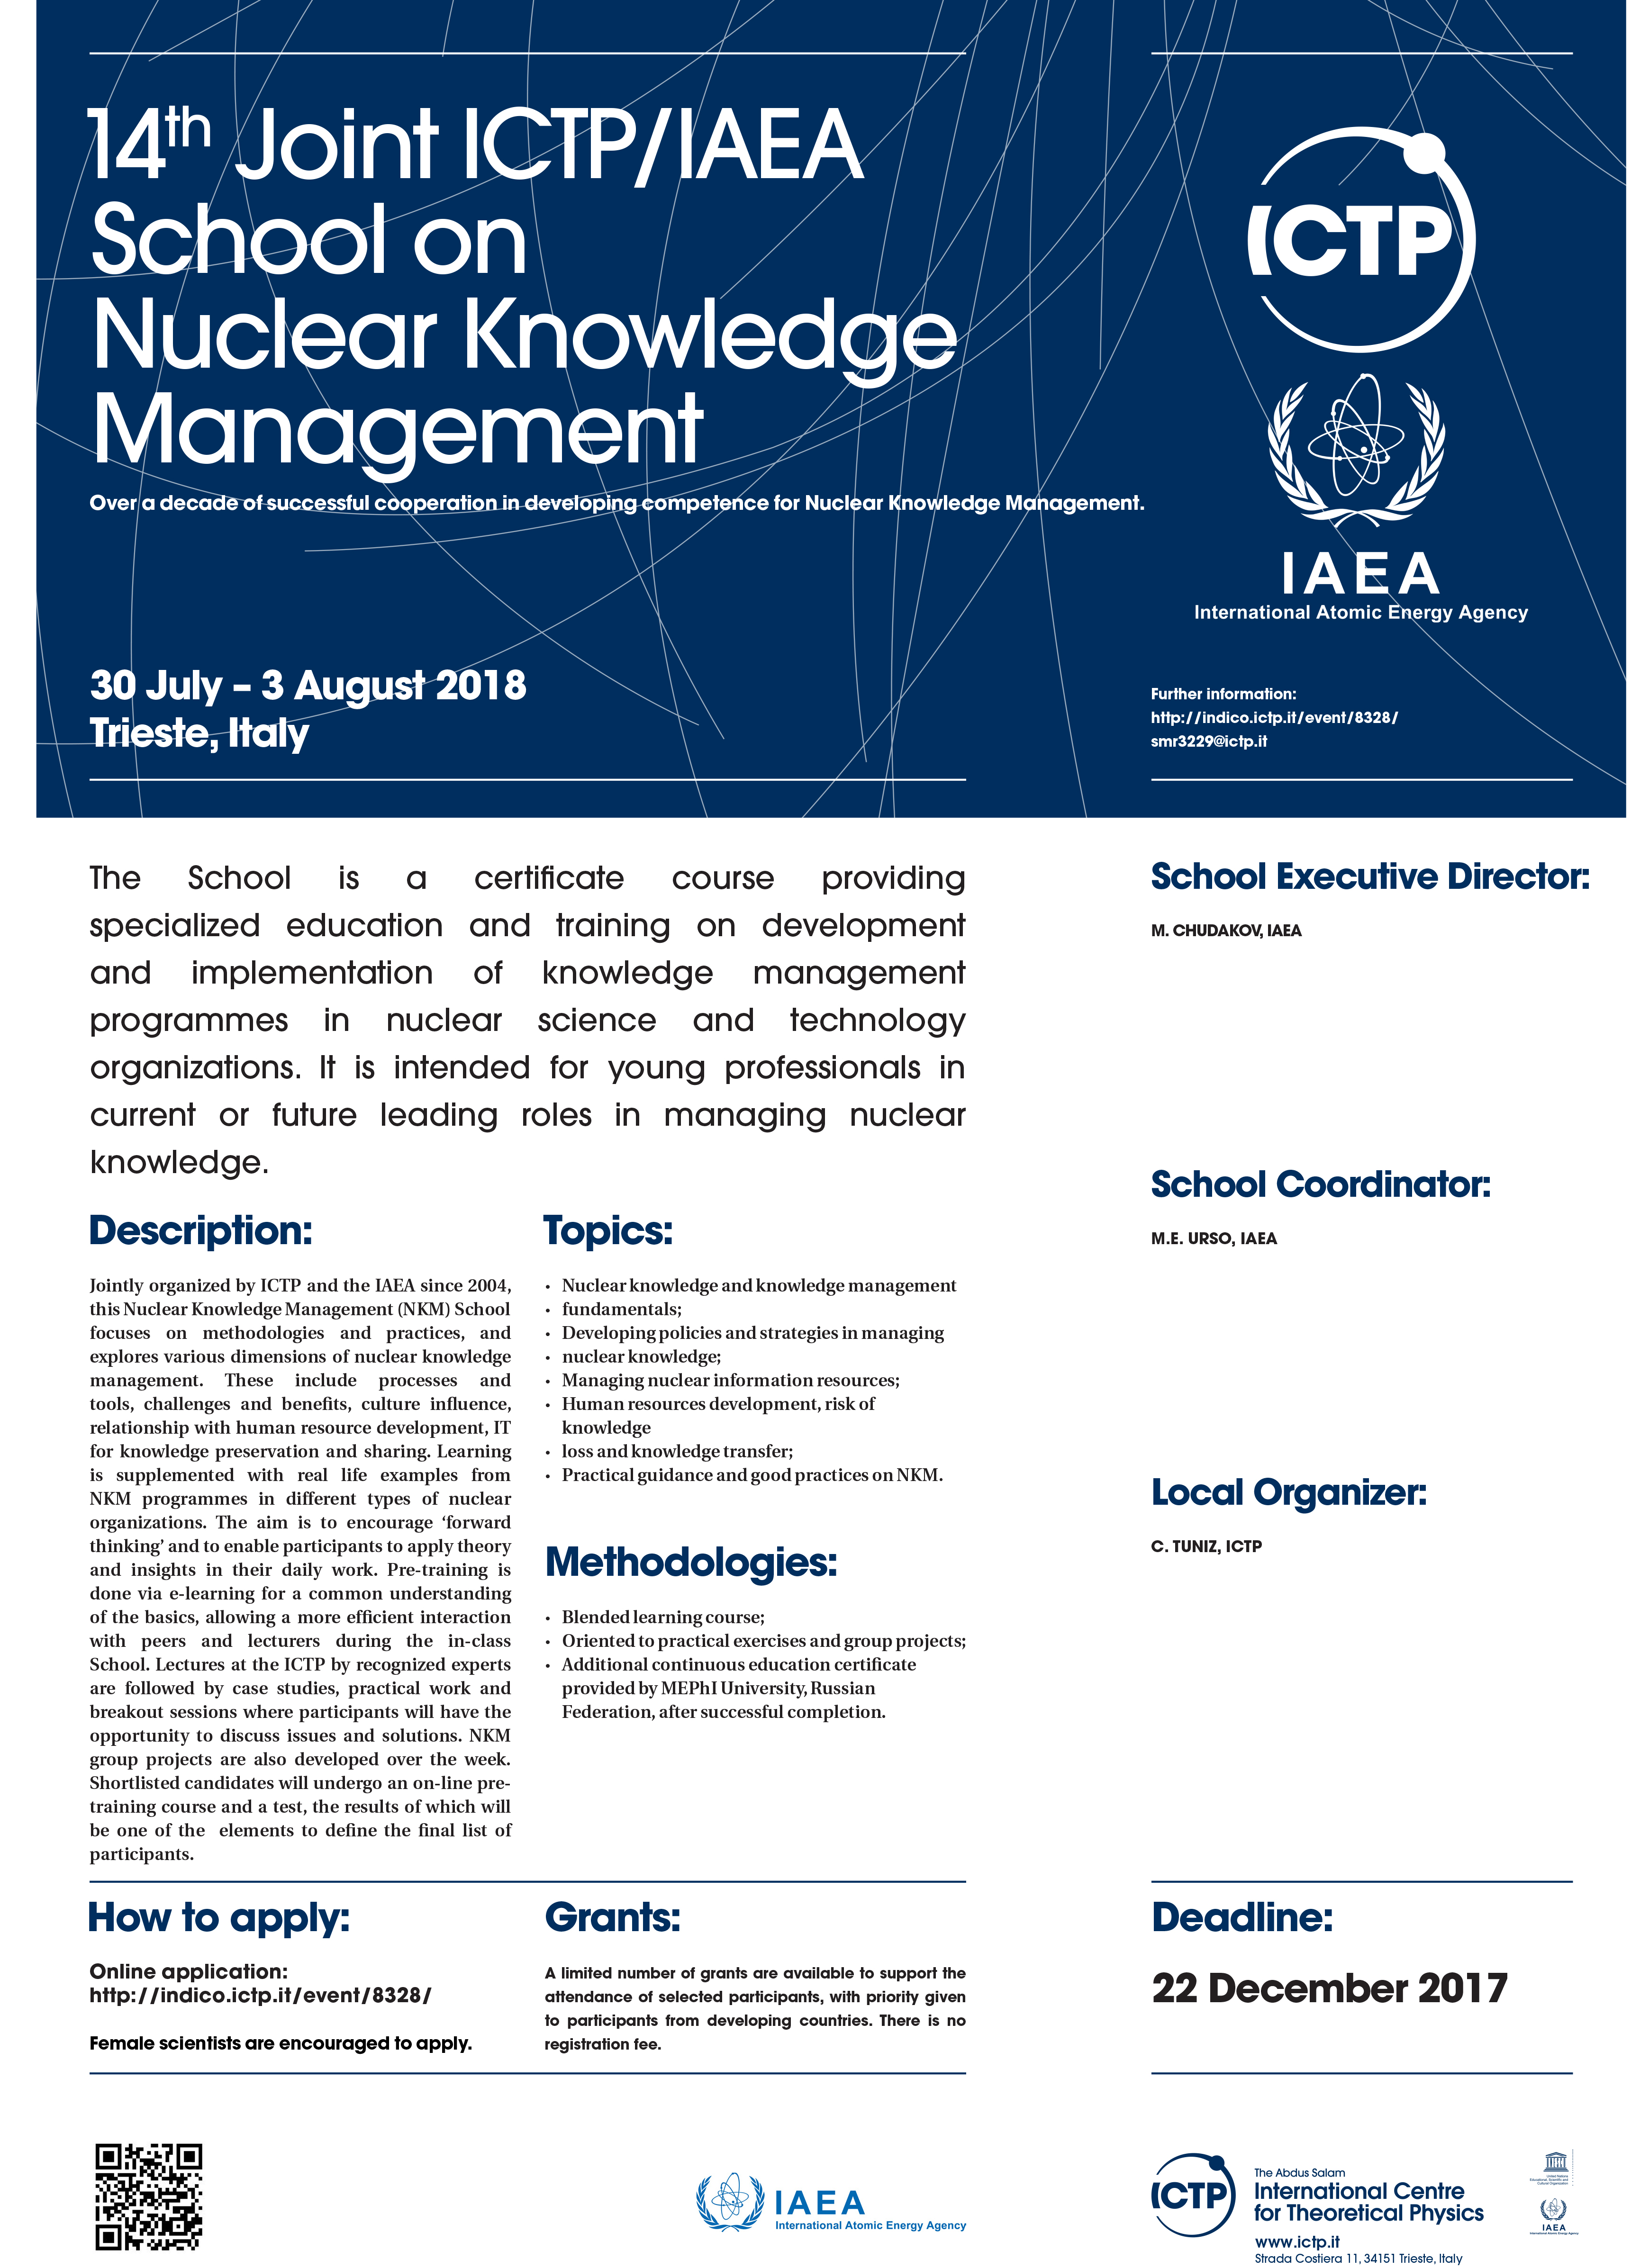 Joint ICTP IAEA School On Nuclear Knowledge Management 2018